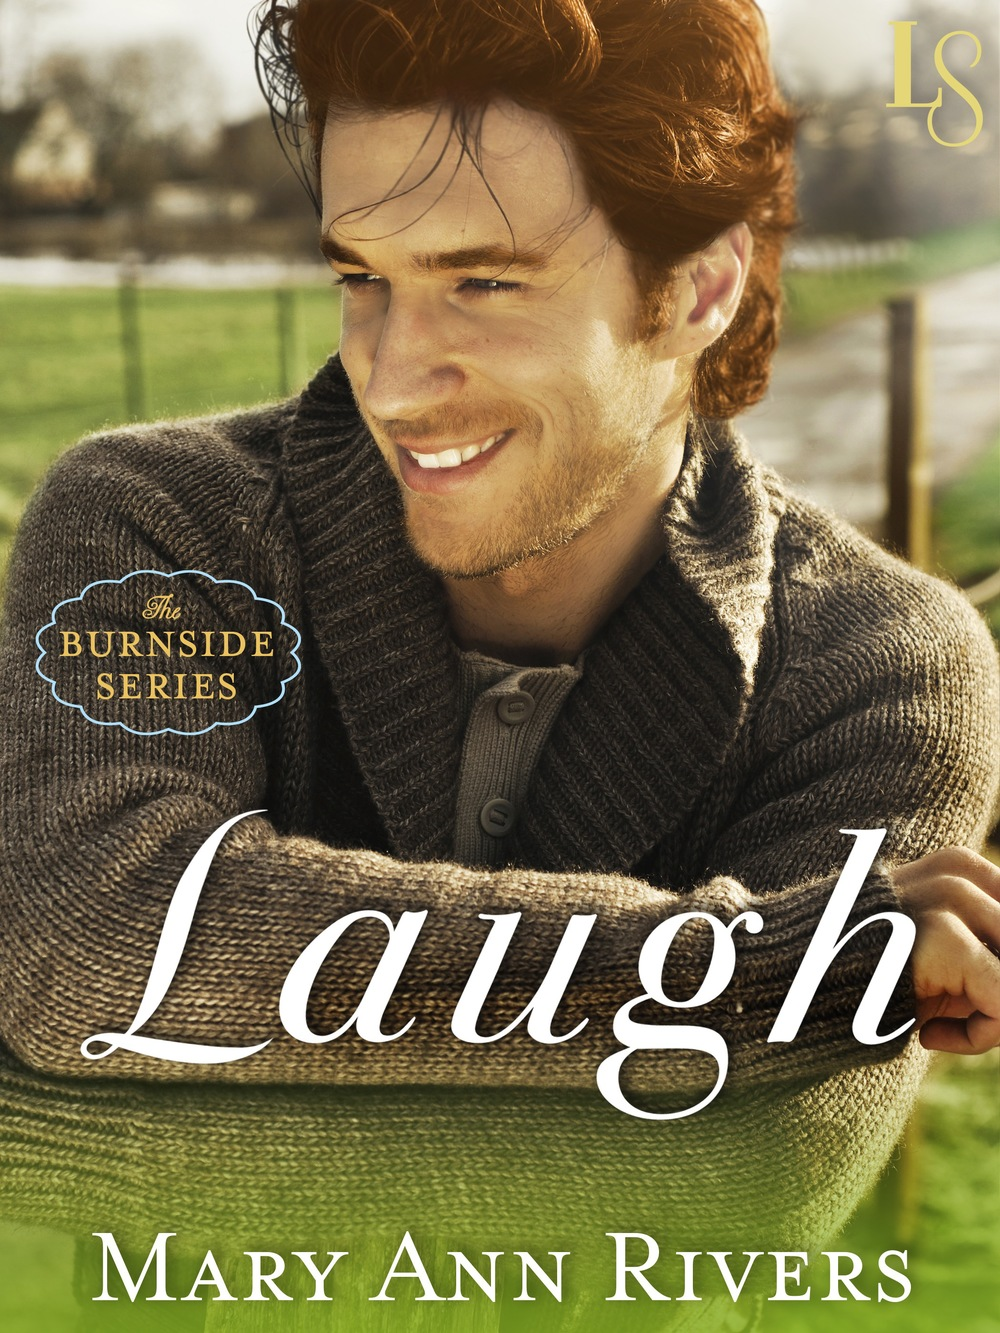 Laugh by Mary Ann Rivers (May 2014)  Amazon  |  Goodreads